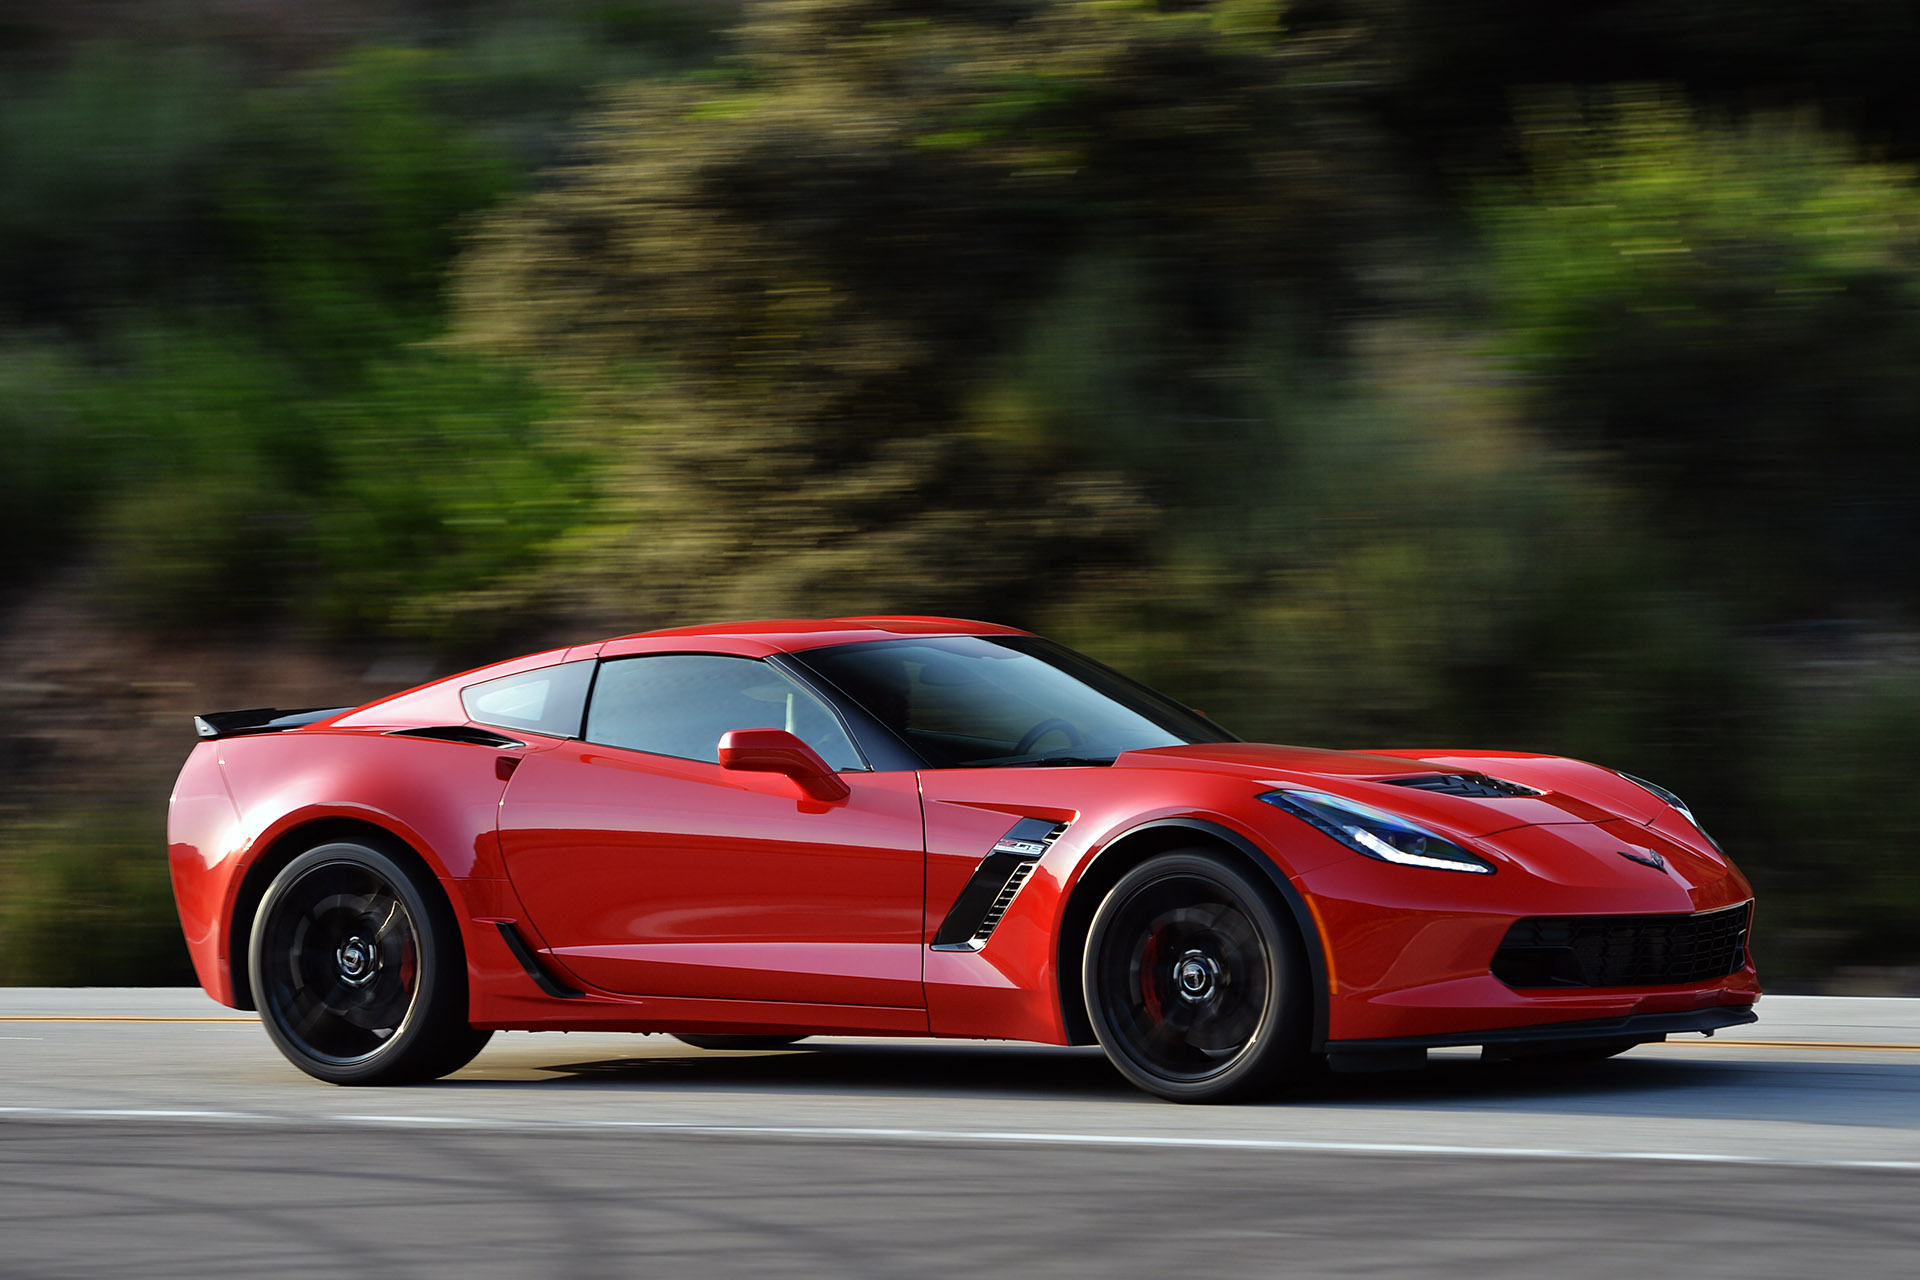 Chevy Certified Pre Owned >> Chevrolet Corvette Z06 Prices, Reviews and New Model Information - Autoblog